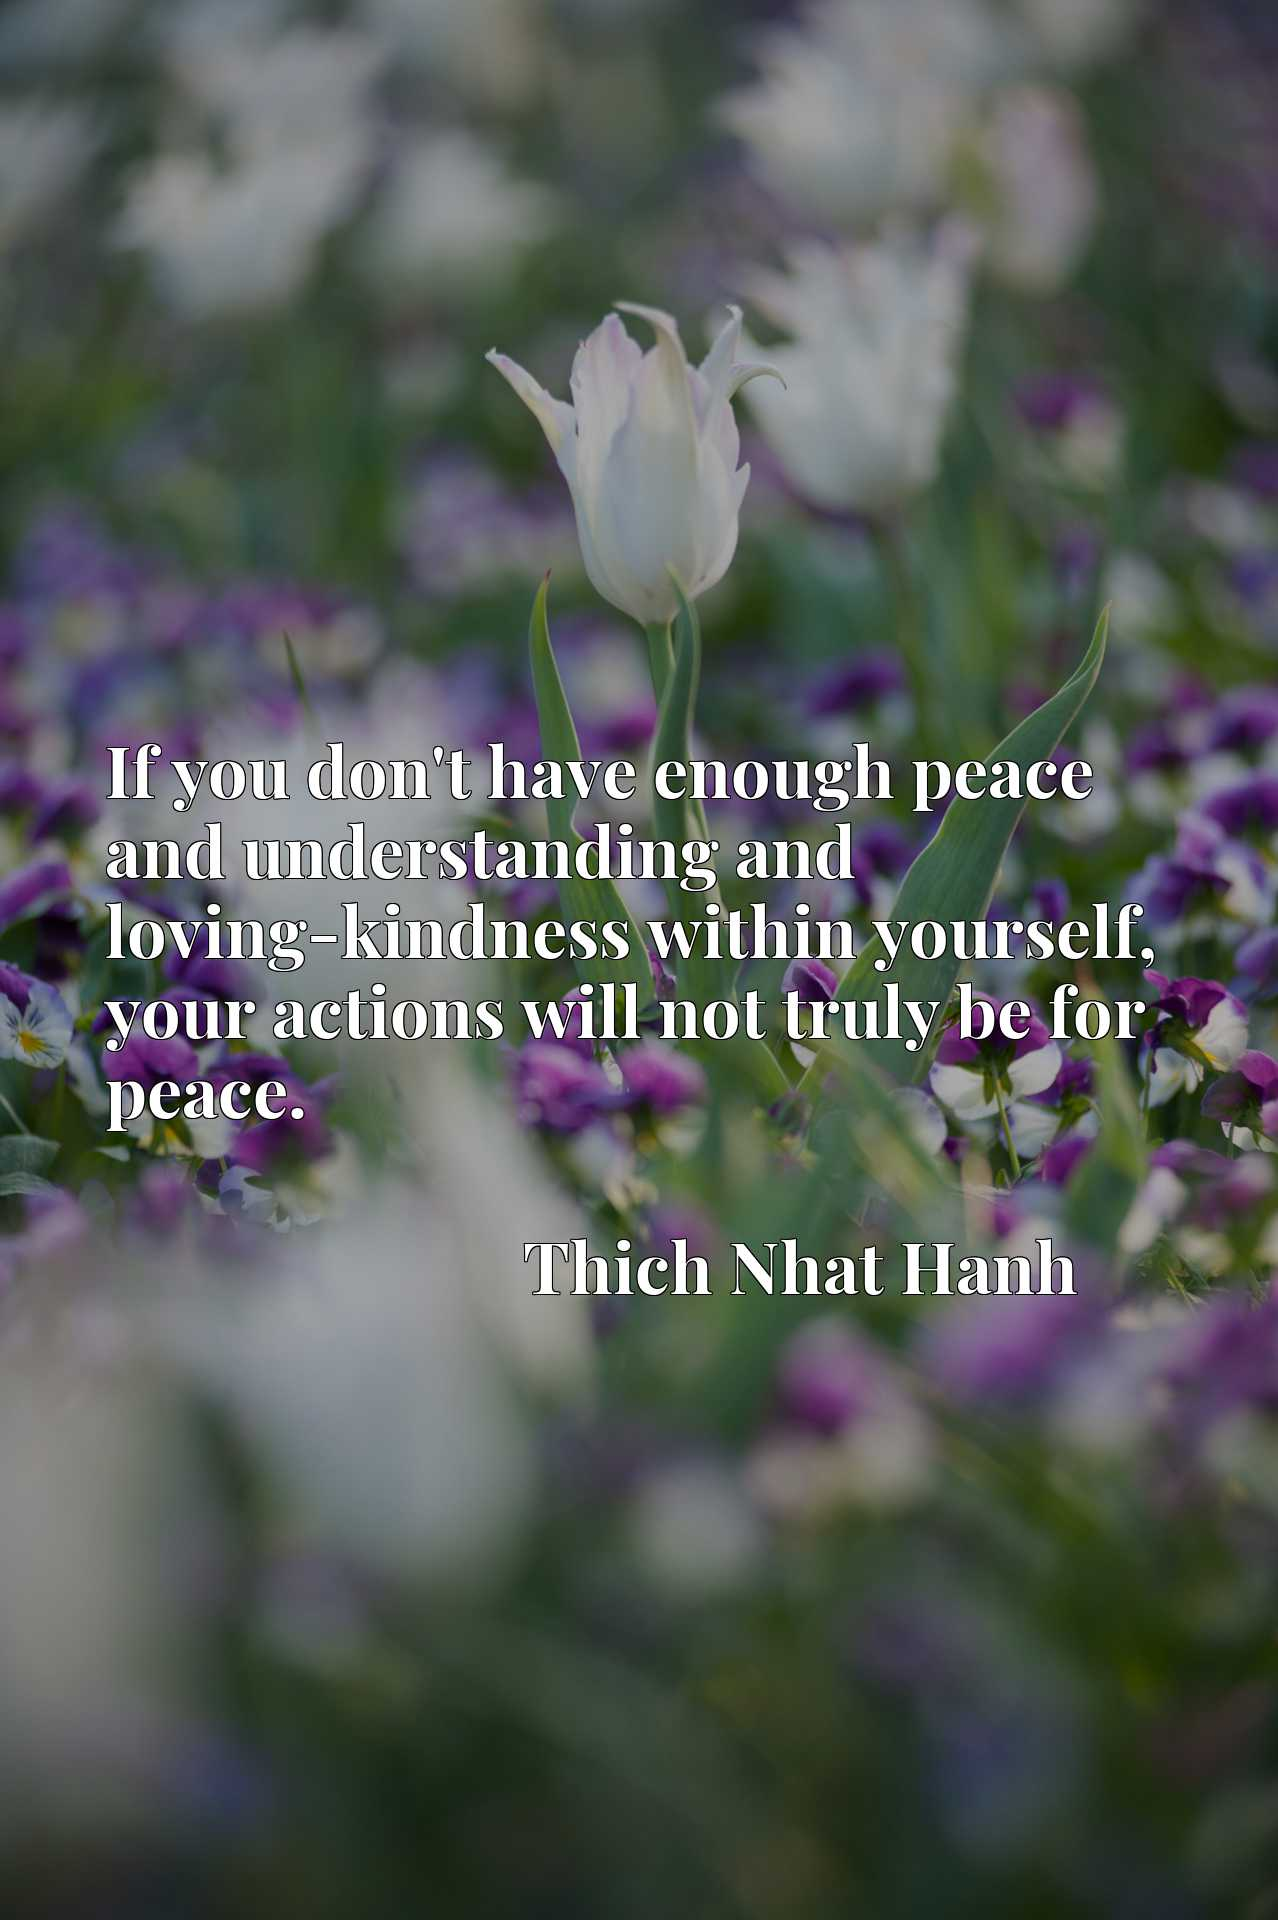 Quote Picture :If you don't have enough peace and understanding and loving-kindness within yourself, your actions will not truly be for peace.